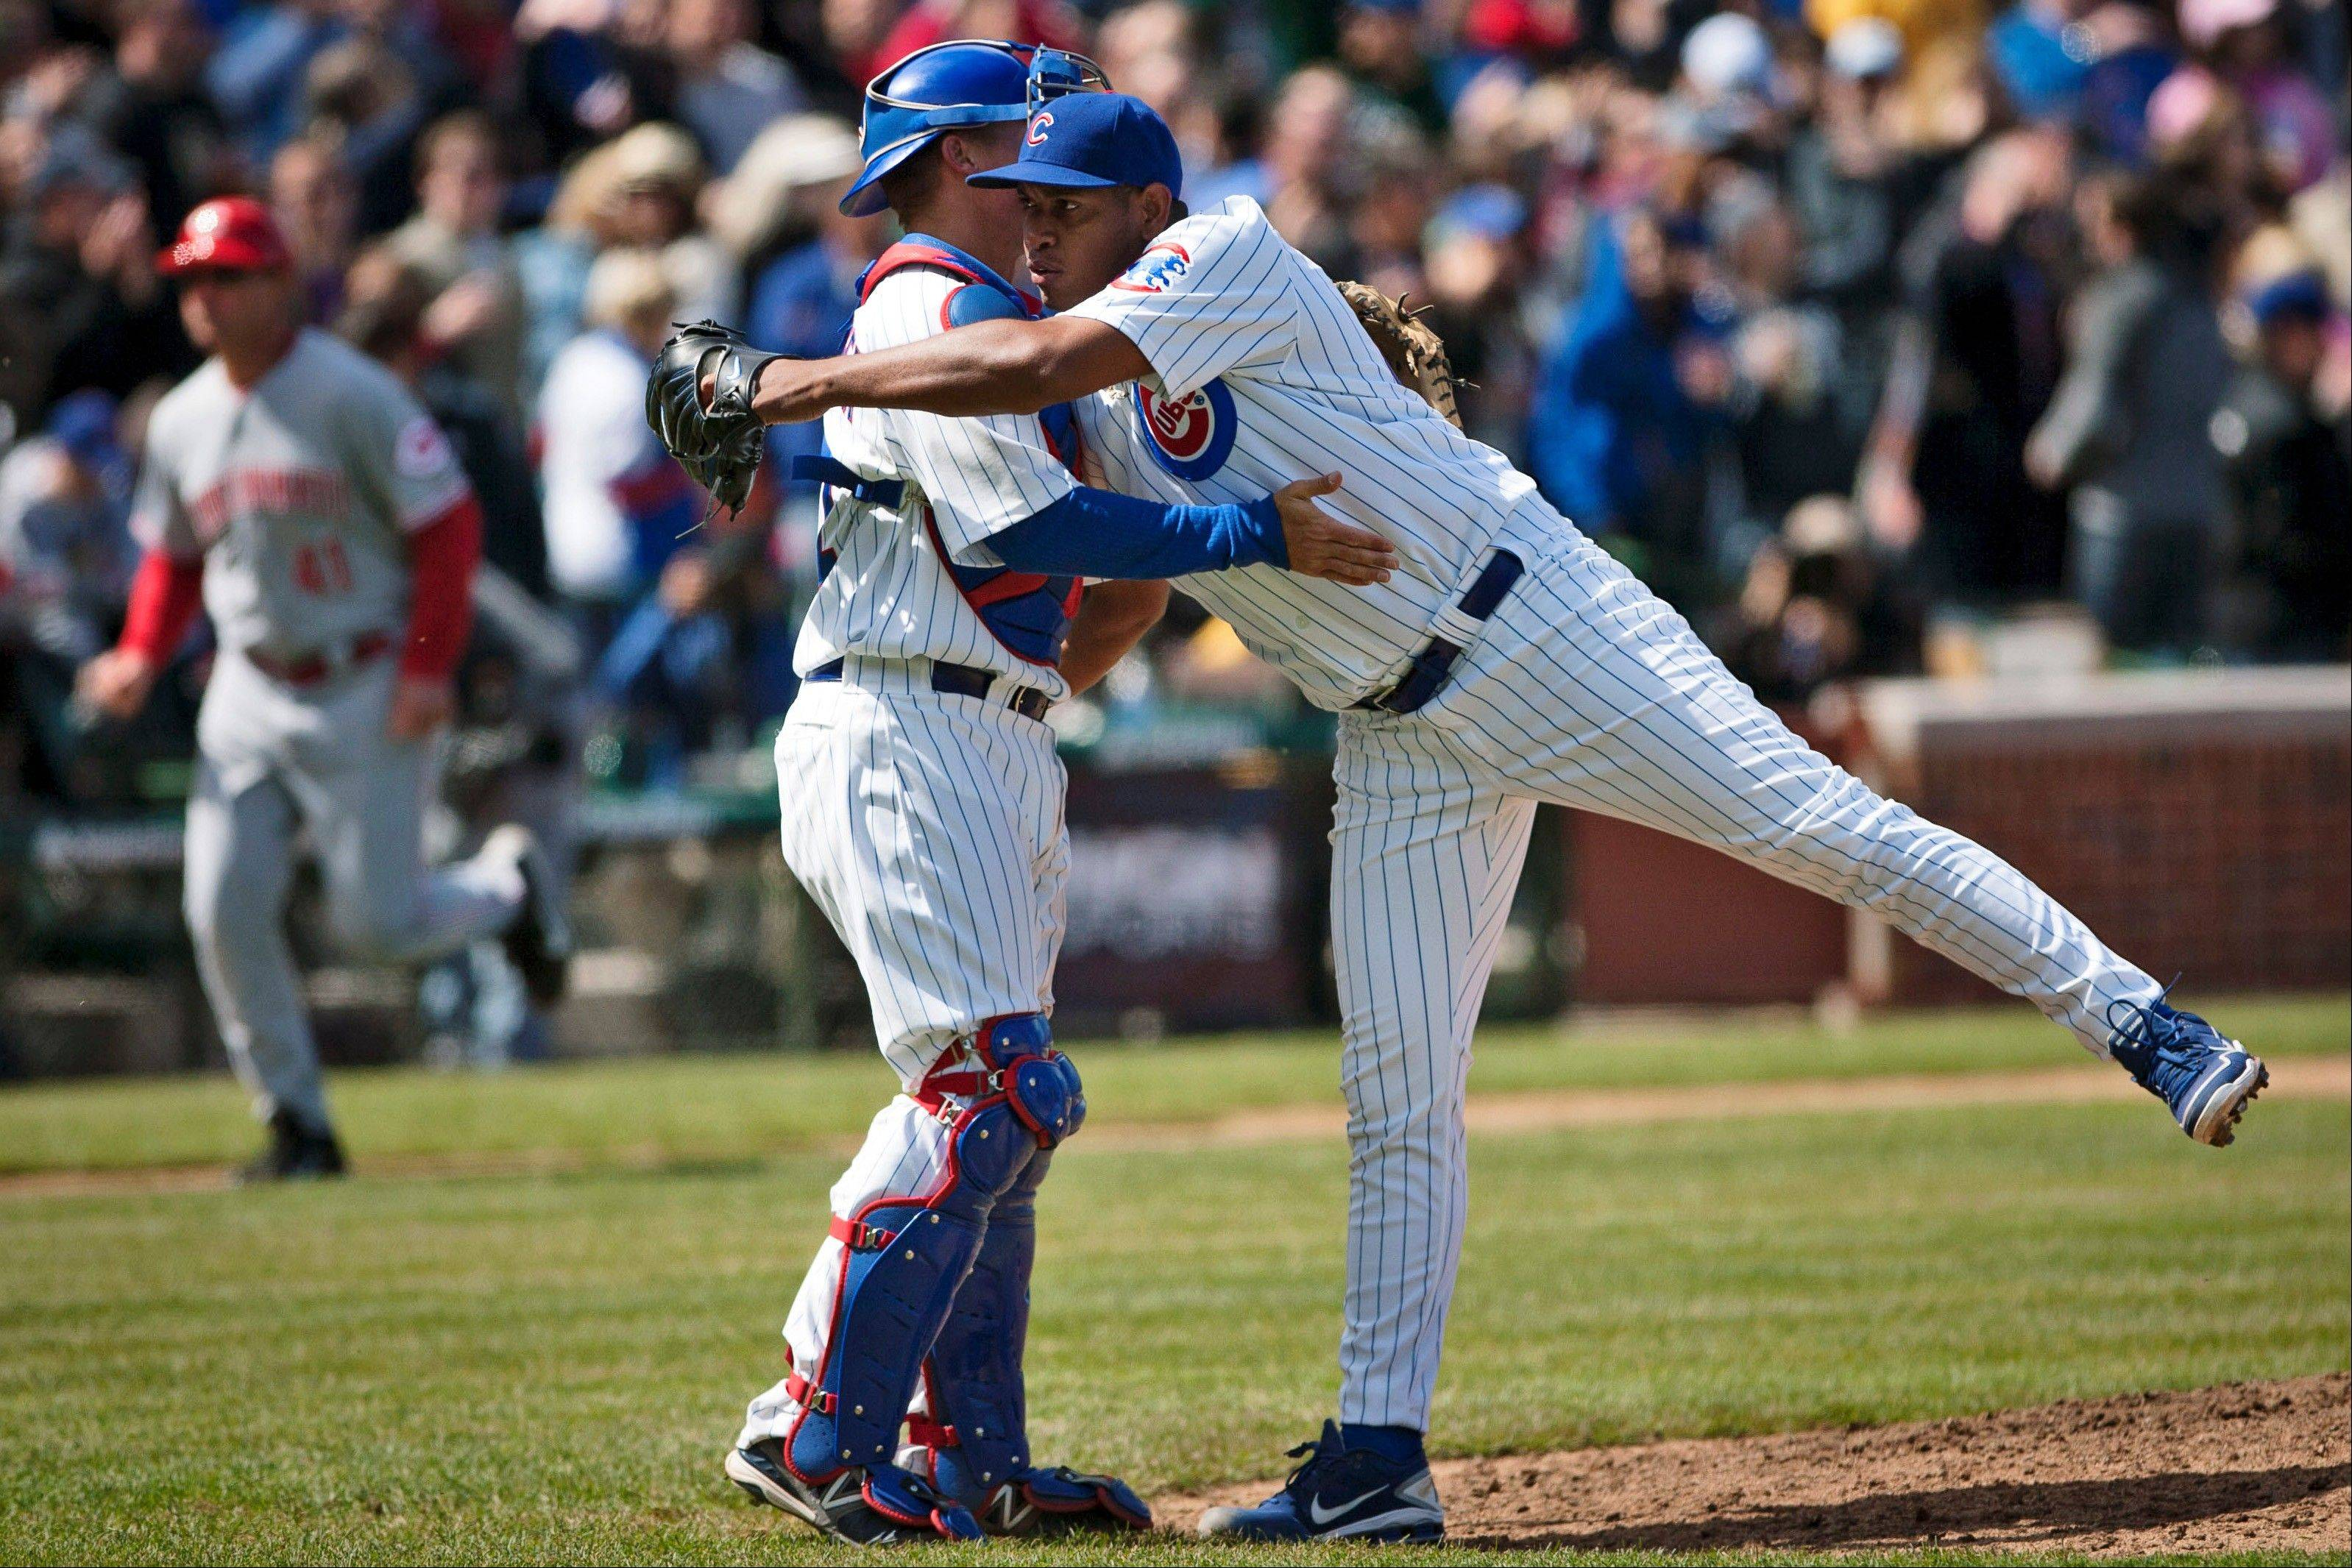 Cubs closer Carlos Marmol hugs catcher Steve Clevenger after defeating the Cincinnati Reds 6-1 Saturday at Wrigley.